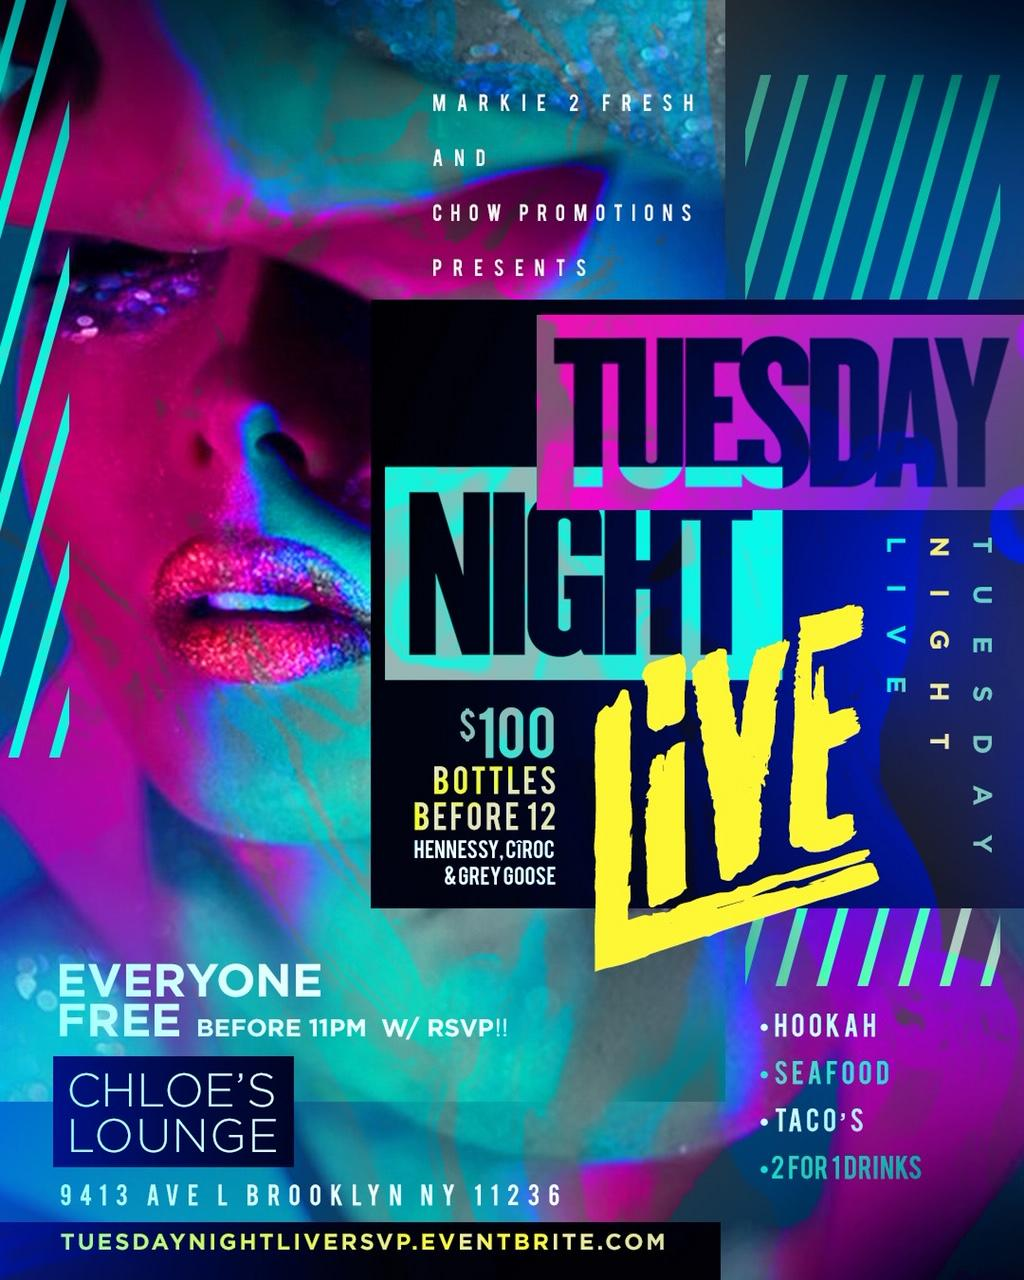 TUESDAY NIGHT LIVE AT CHLOE'S